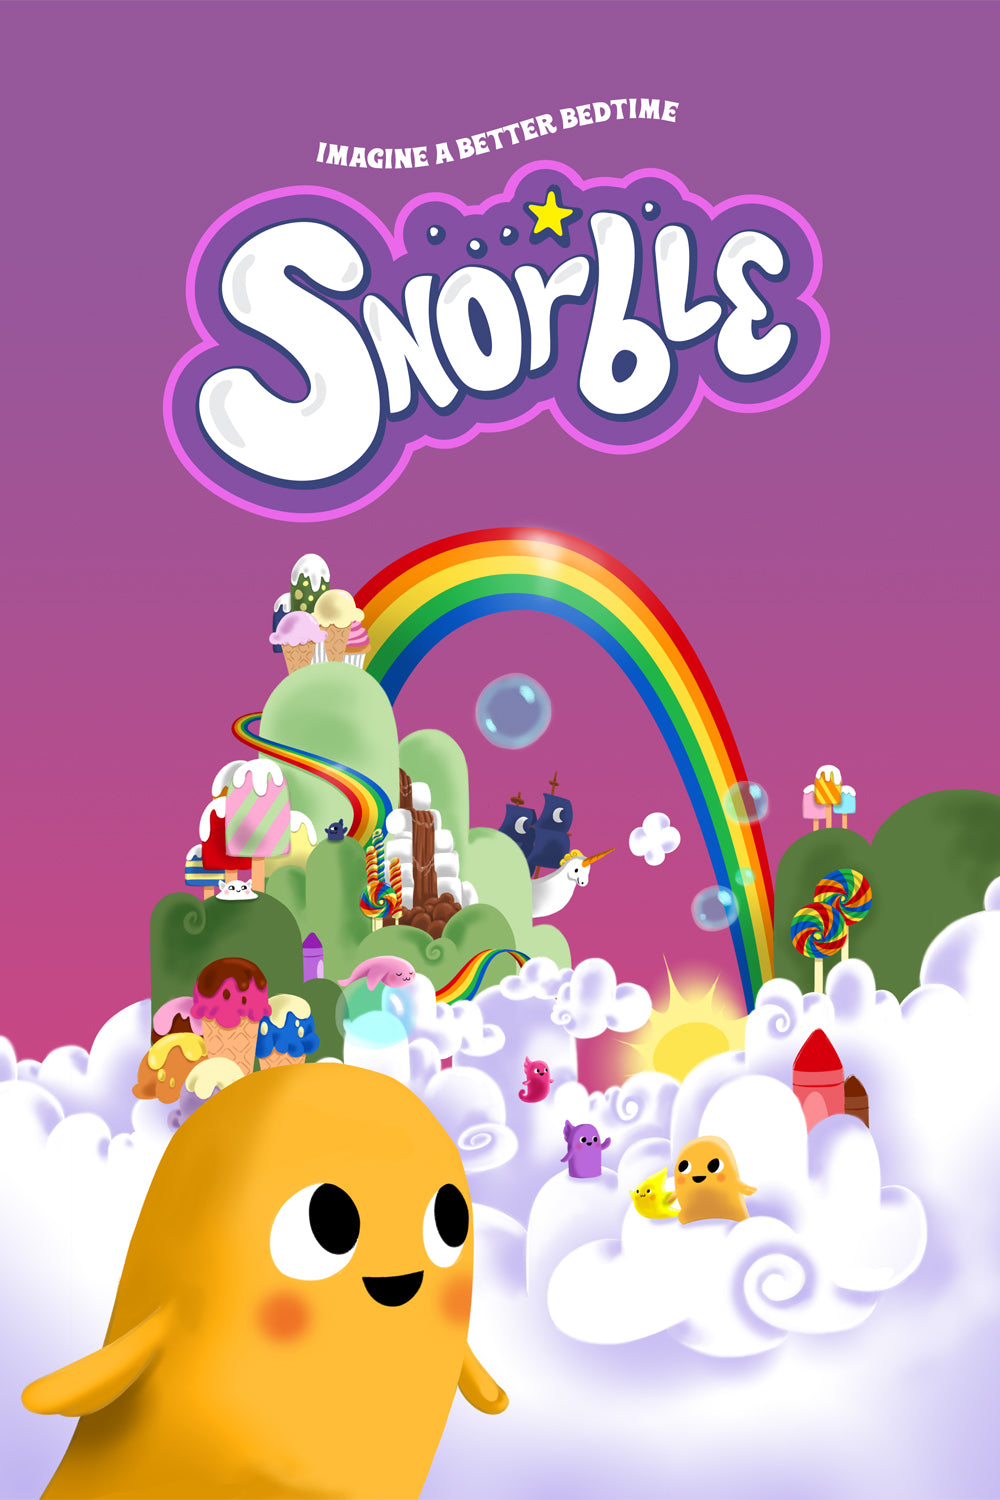 Image contains an illustration of the kingdom of Lullaboo, which contains a number of adorable fantast creatures having fun in the clouds. There are rainbows, chocolate waterfalls, a pirate ship, trees made of ice cream, and more.